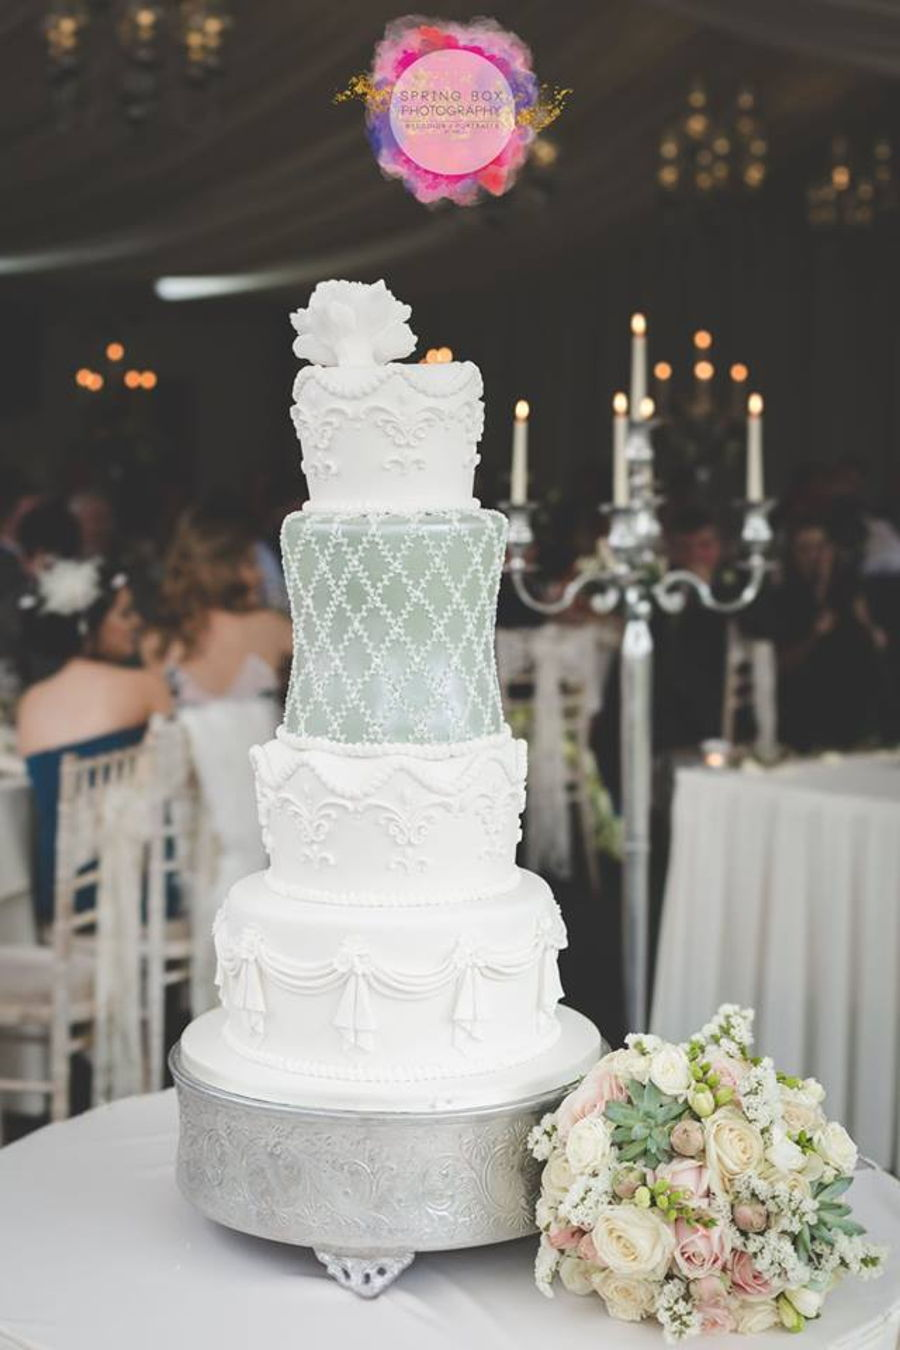 Sage Green And White Wedding Cake - CakeCentral.com